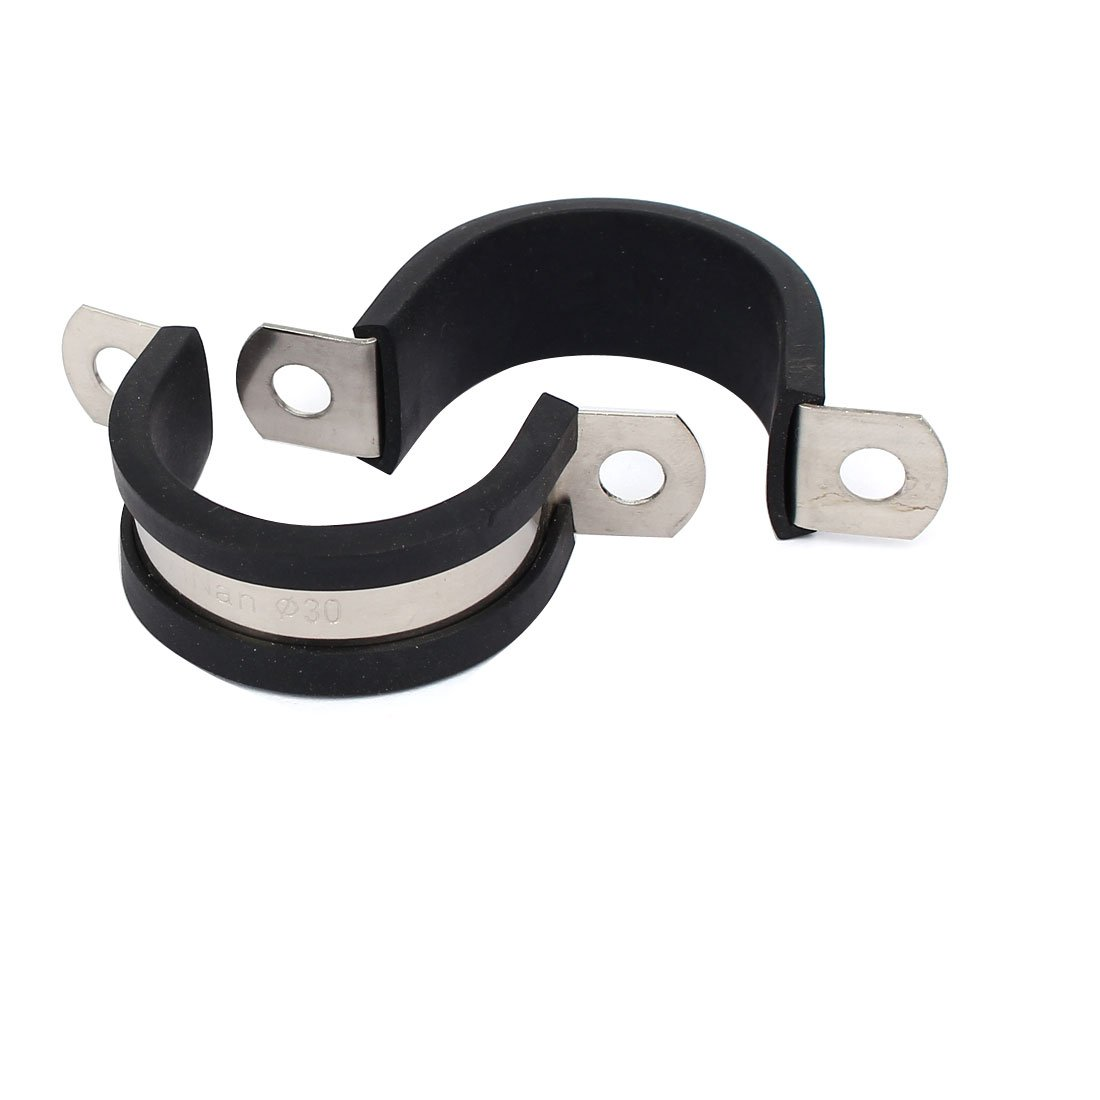 sourcingmap® 30mm Dia EPDM Rubber Lined U Shaped Pipe Tube Wire Clamps Clips 2pcs a17011900ux0619